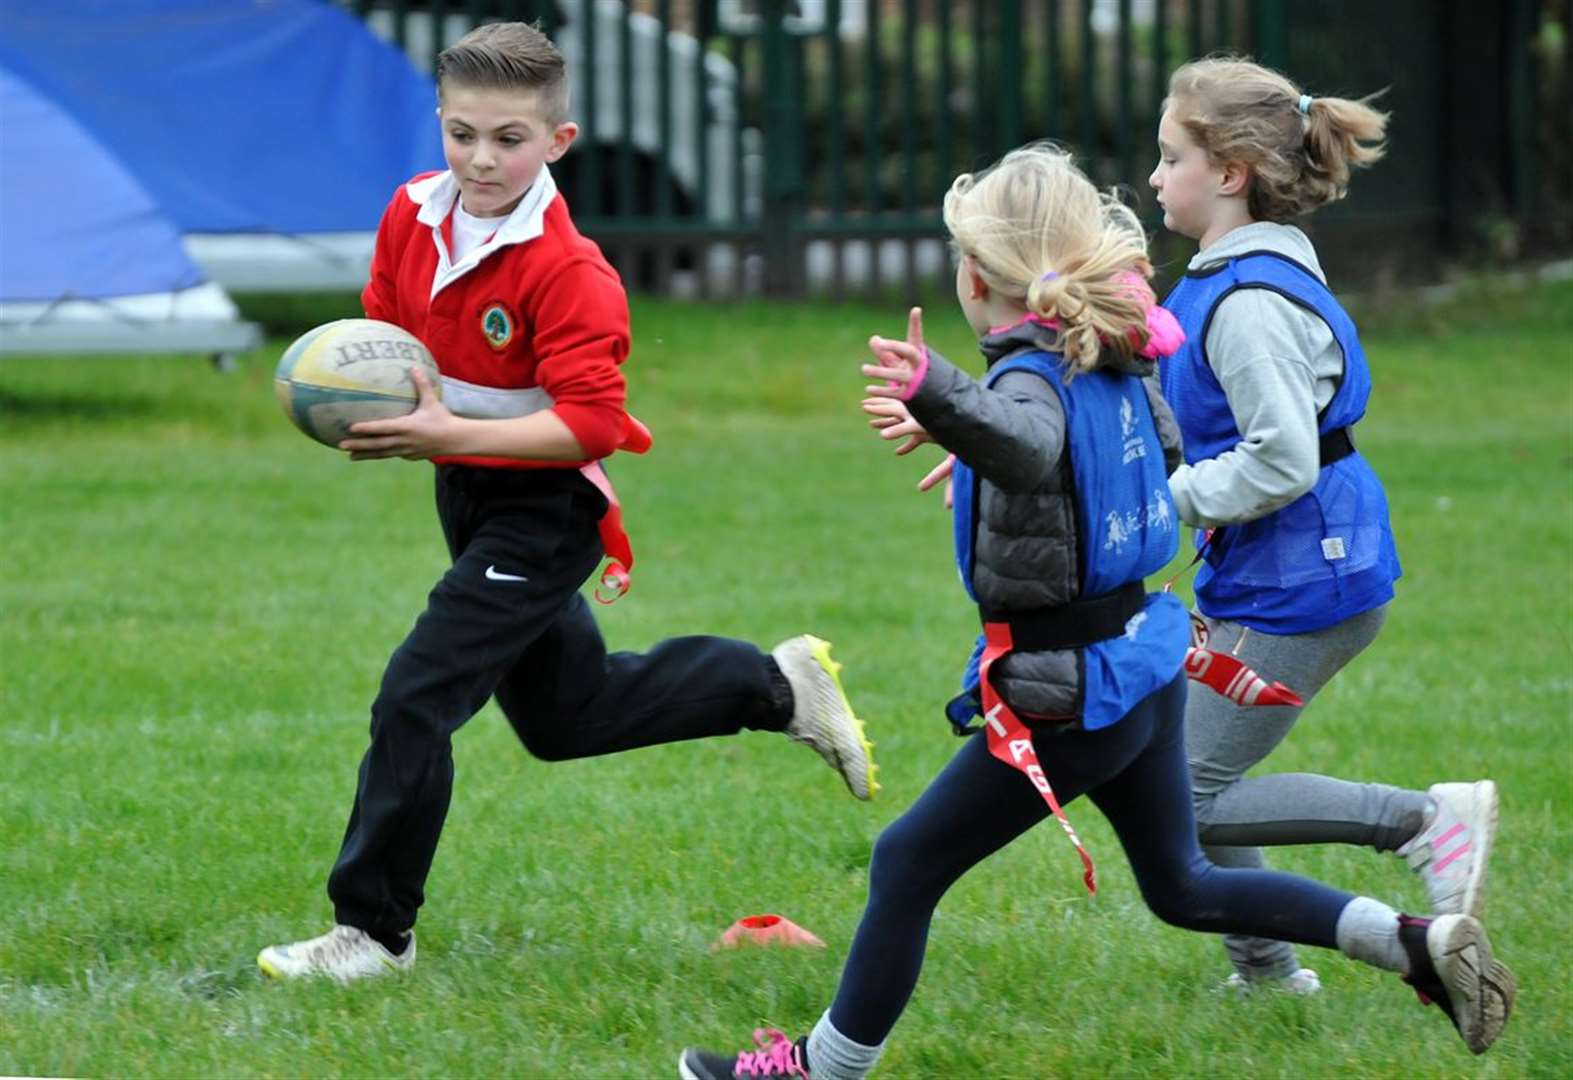 Primary School pupils get together for first taste of rugby